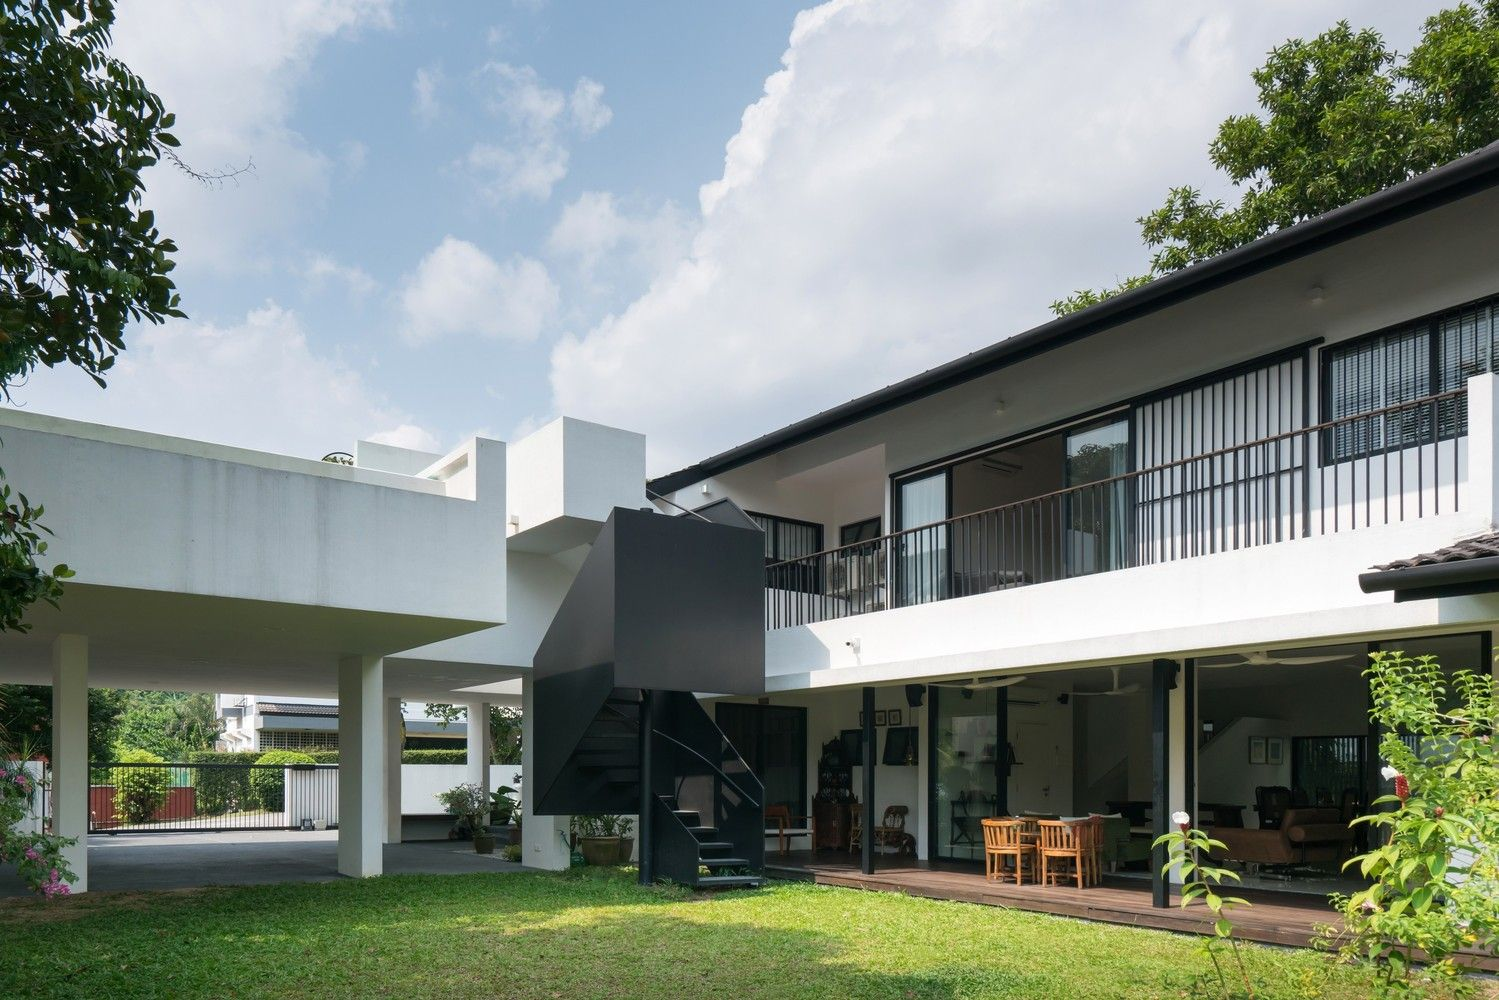 Gallery Of Eigent House Fabian Tan Architect 6 Modern Bungalow House Design Bungalow House Design Modern Bungalow